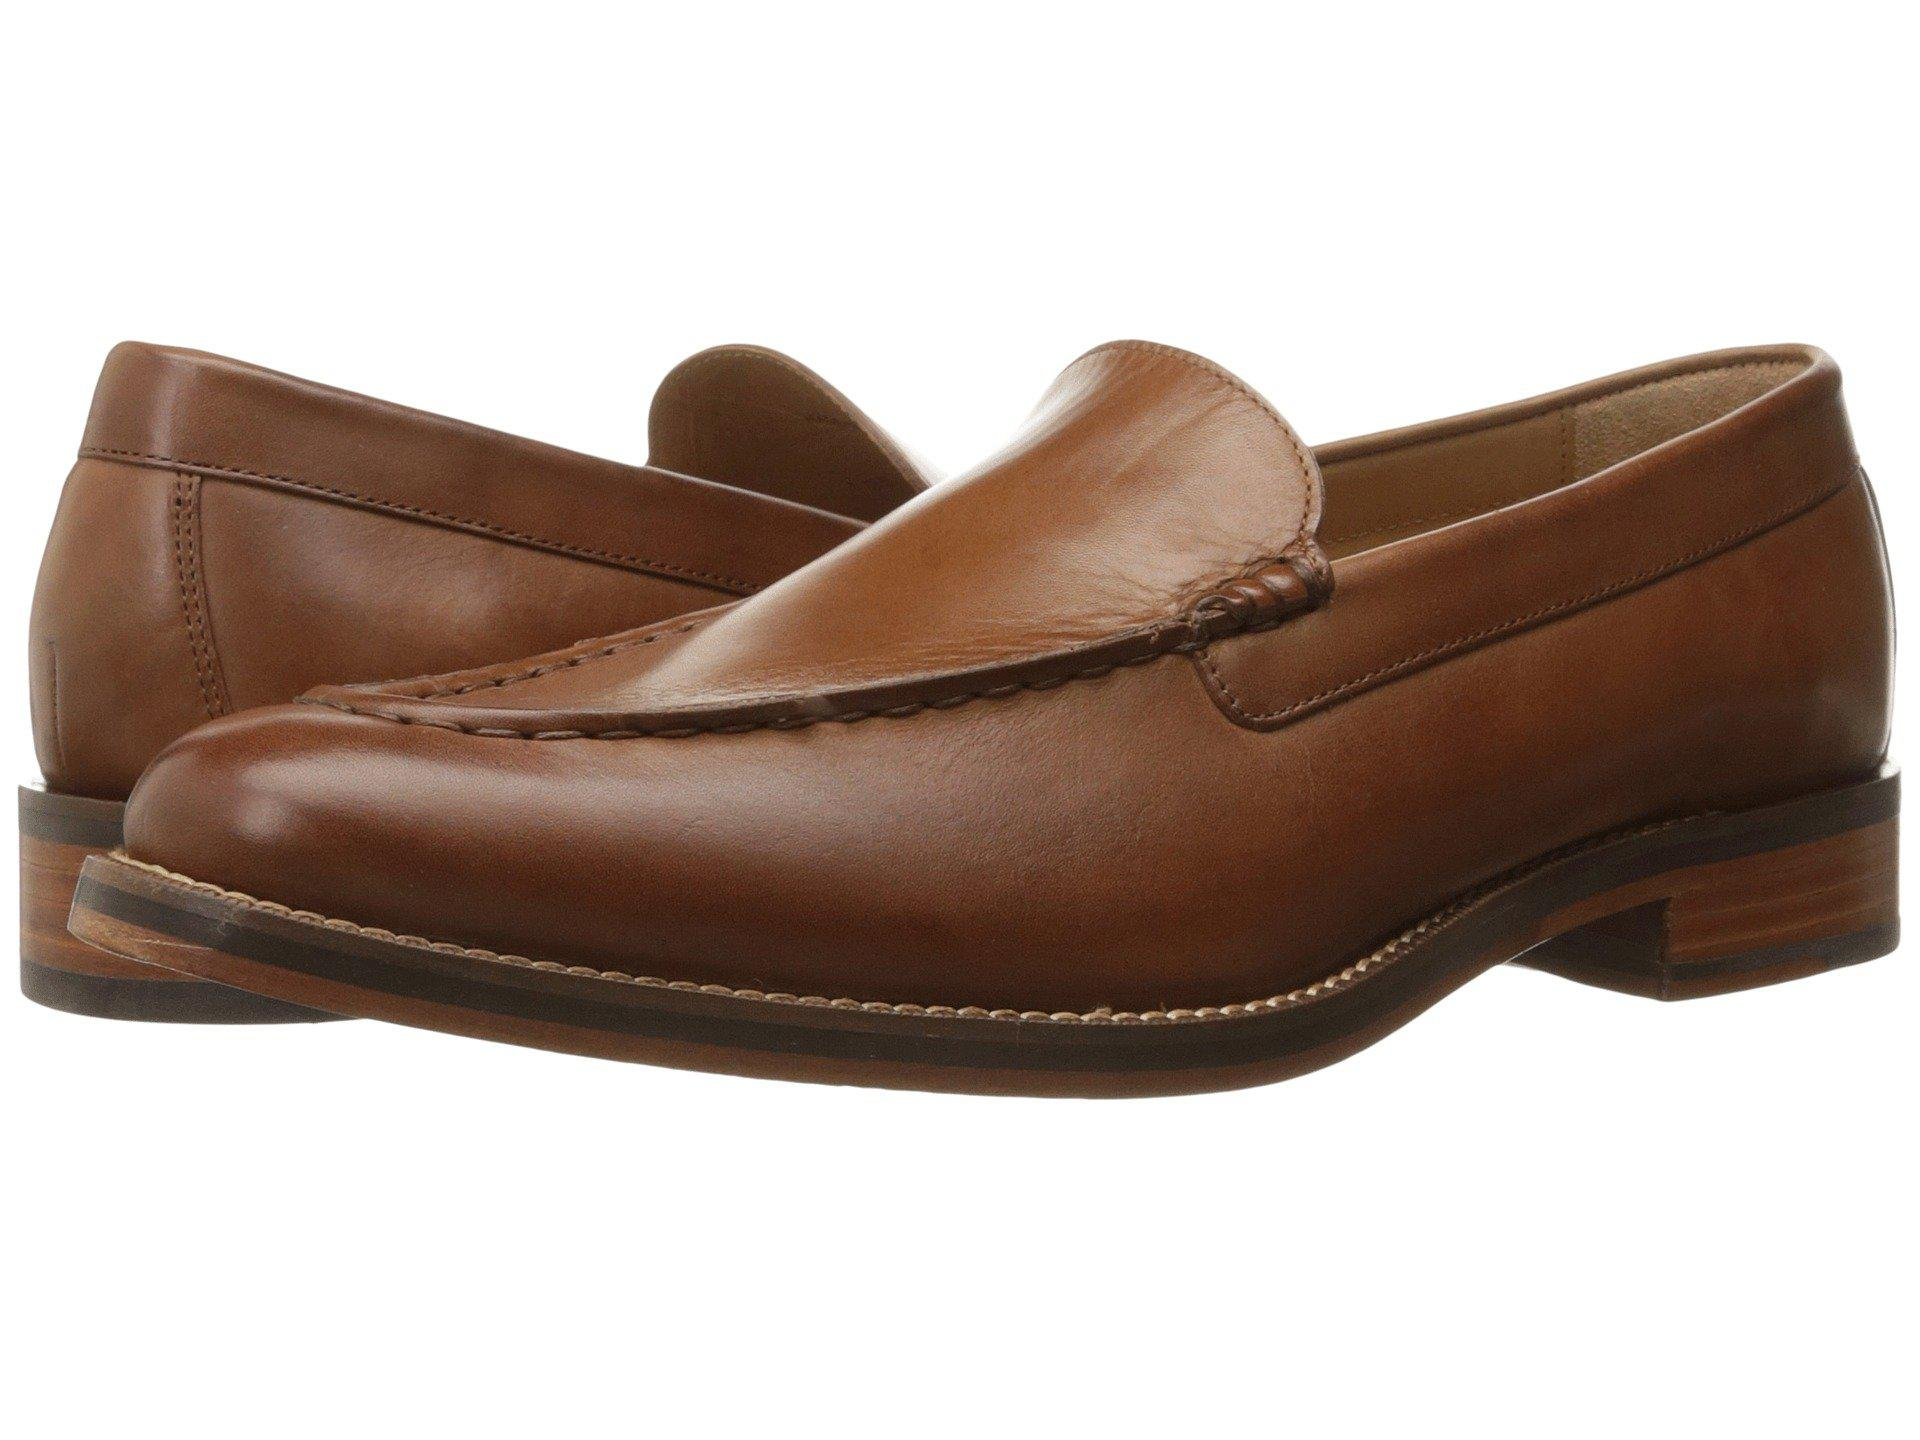 b926c3ec9ae Lyst - Cole Haan Madison Grand Venetian in Brown for Men - Save 25%